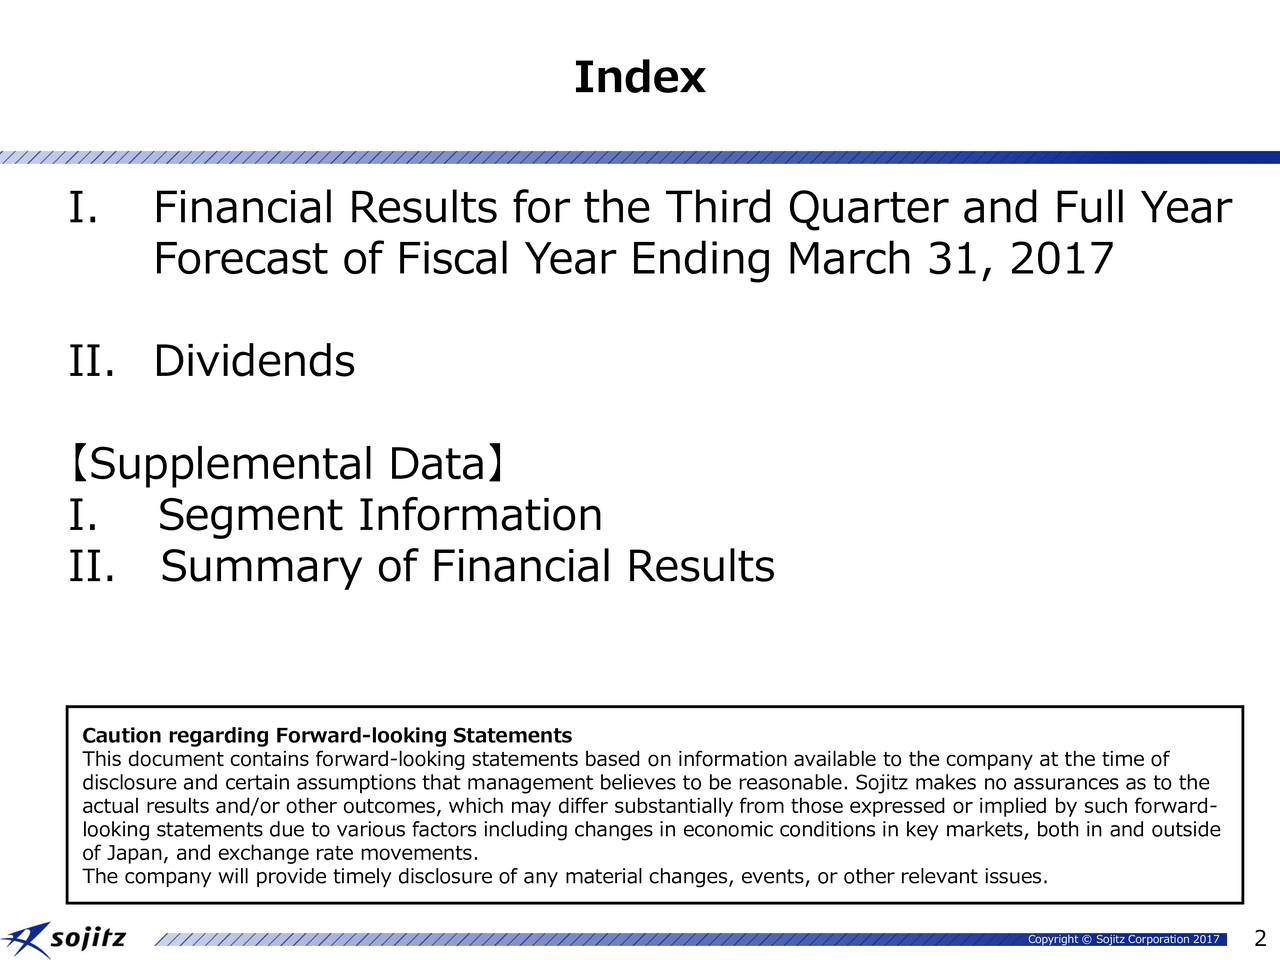 I. Financial Results for the Third Quarter and Full Year Forecast of Fiscal Year Ending March 31, 2017 II. Dividends Supplemental Data I. Segment Information II. Summary of Financial Results Caution regarding Forward-looking Statements This document contains forward-looking statements based on information available to the company at the time of actual results and/or other outcomes, which may differ substantially from those expressed or implied by such forward- looking statements due to various factors including changes in economic conditions in key markets, both in and outside of Japan, and exchange rate movements. The company will provide timely disclosure of any material changes, events, or other relevant issues. Copyright  Sojitz Corporation 2017